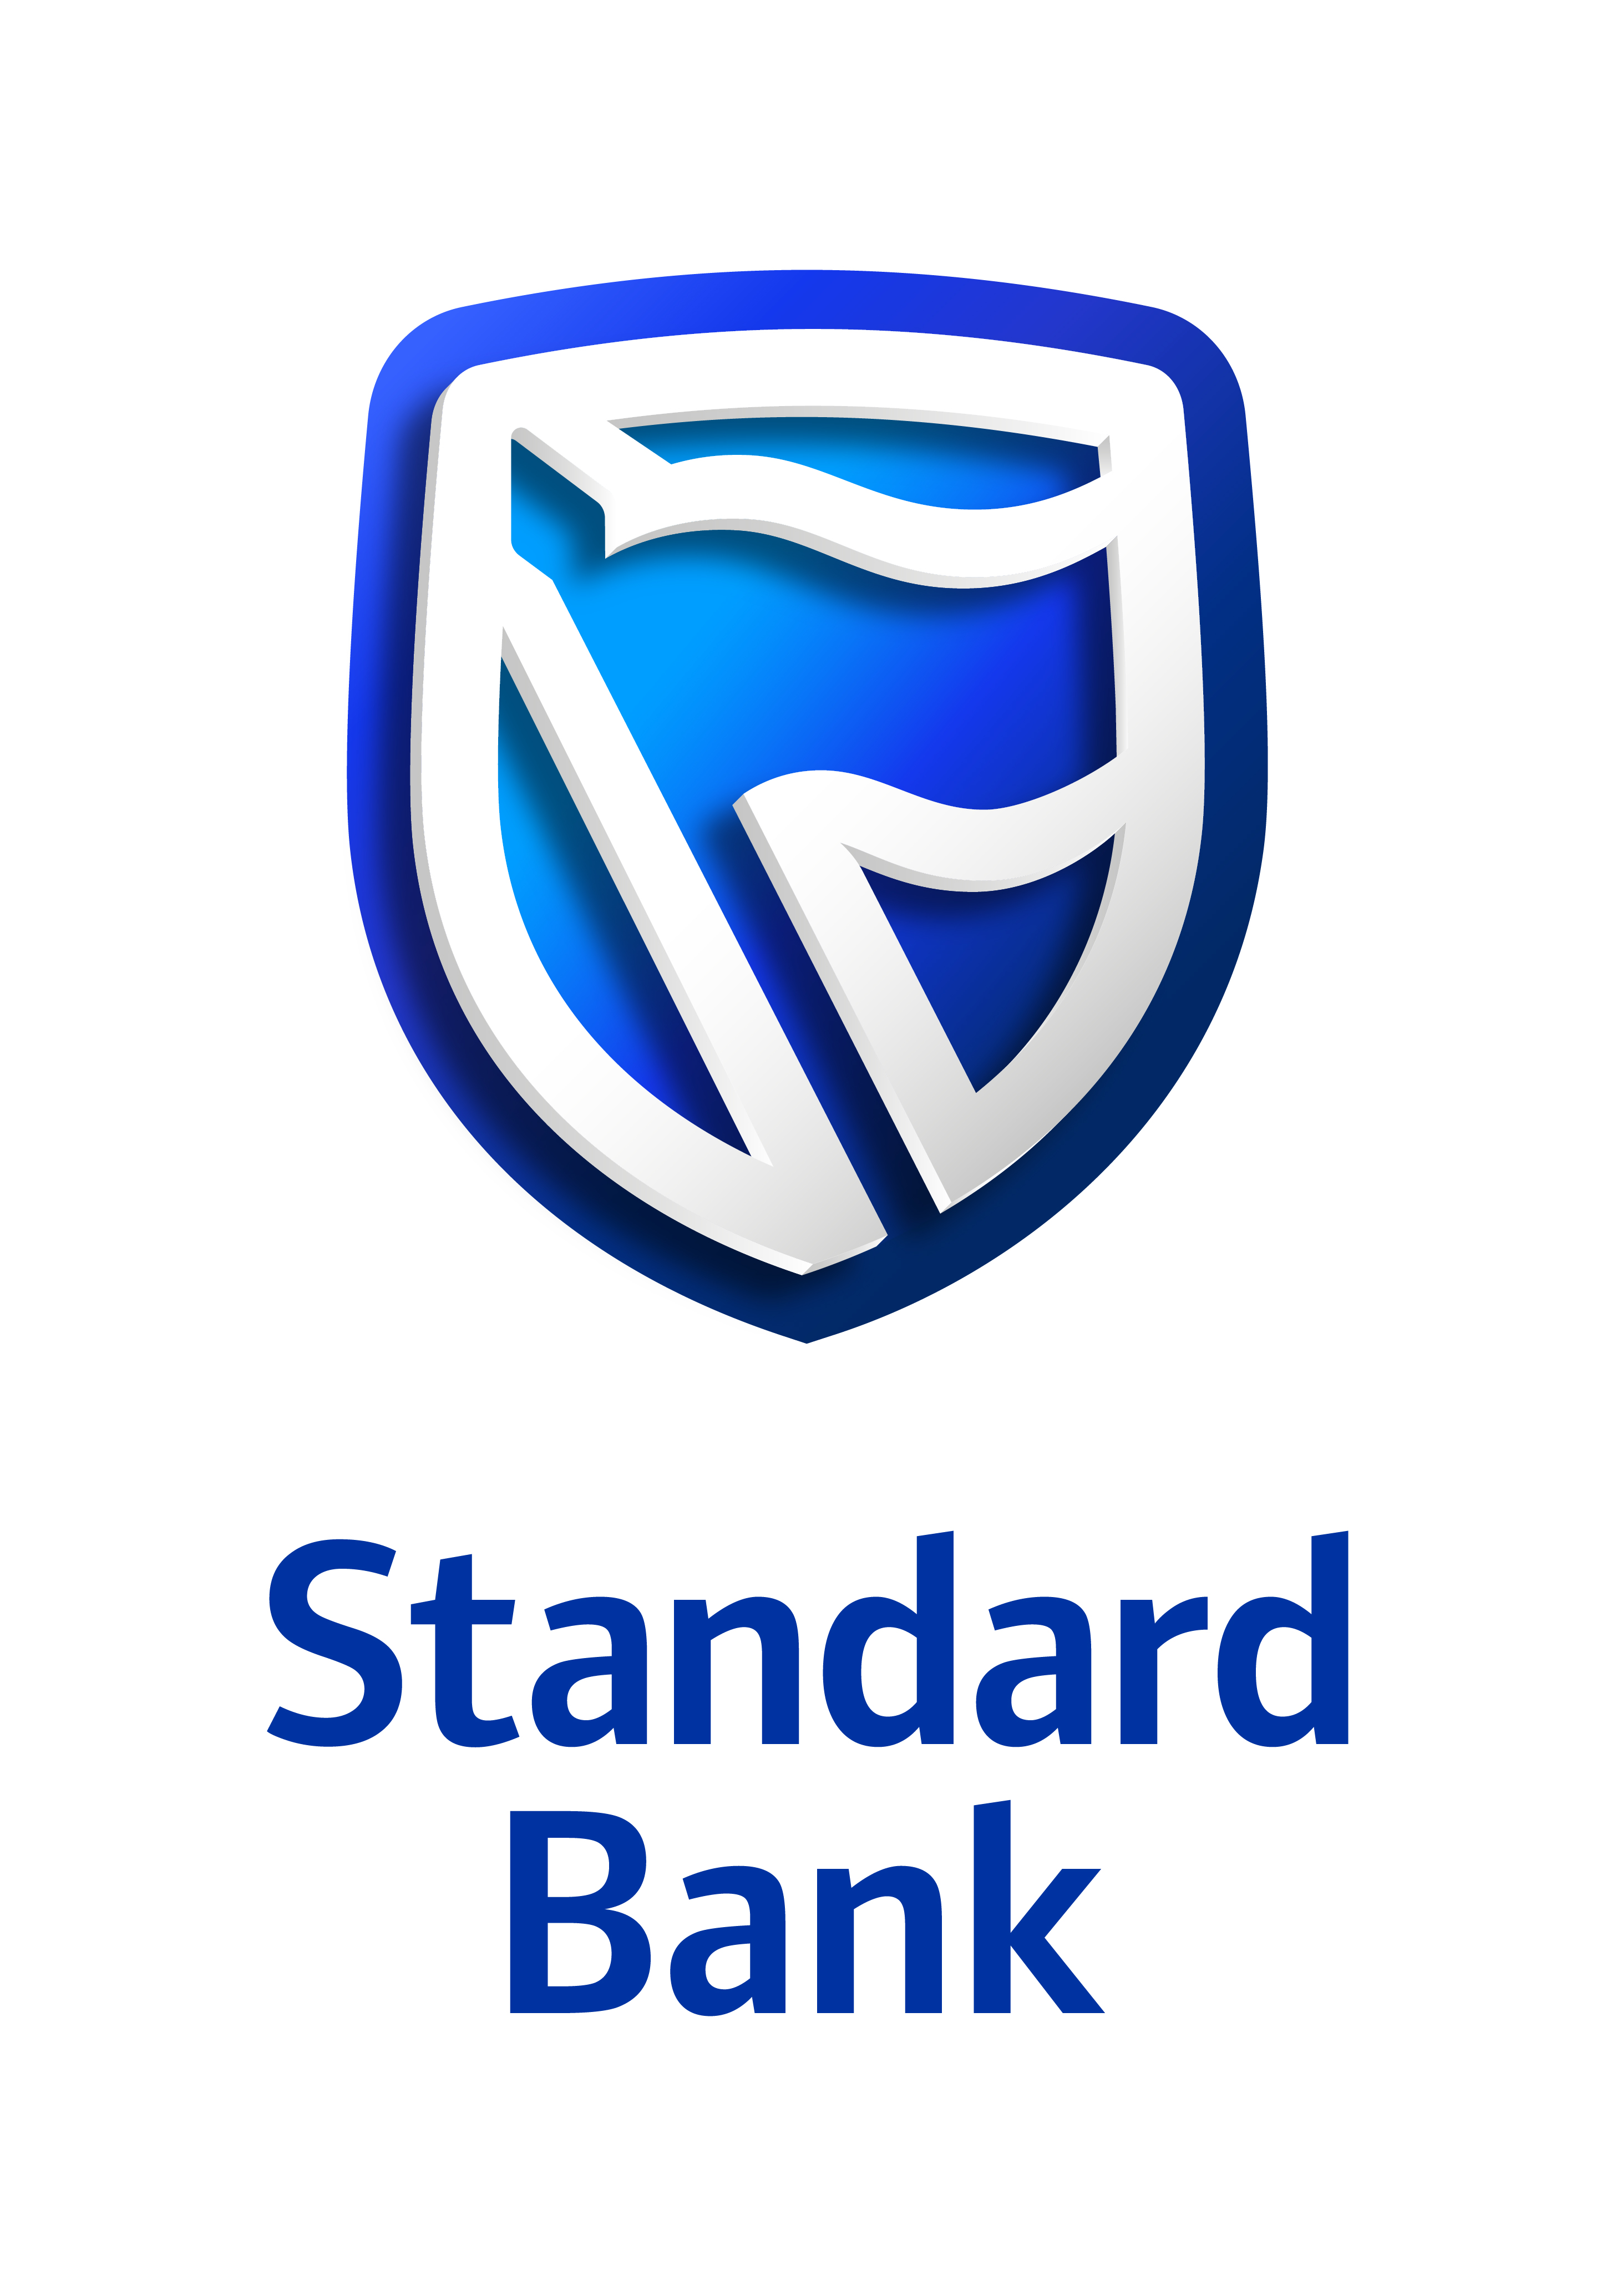 Standard bank forex trading software